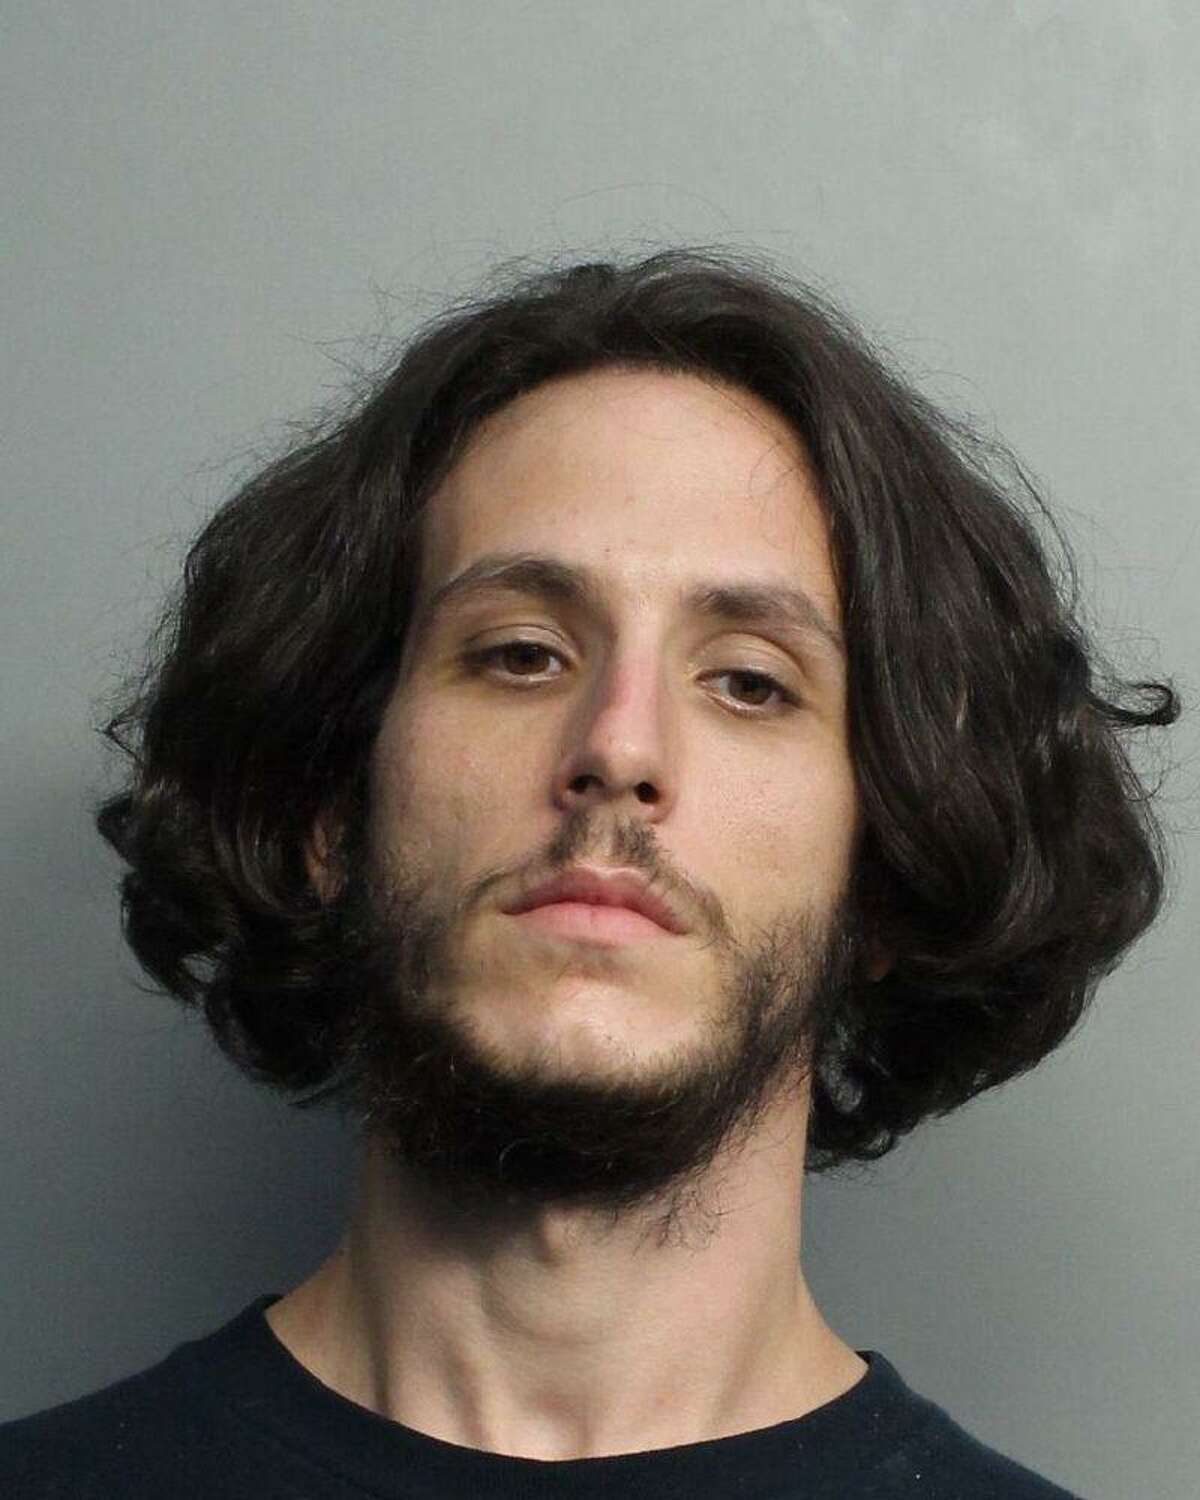 Daniel Garcia was arrested in Florida in connection with the death of his stepson Domenic Patrick Aguilar, 5.